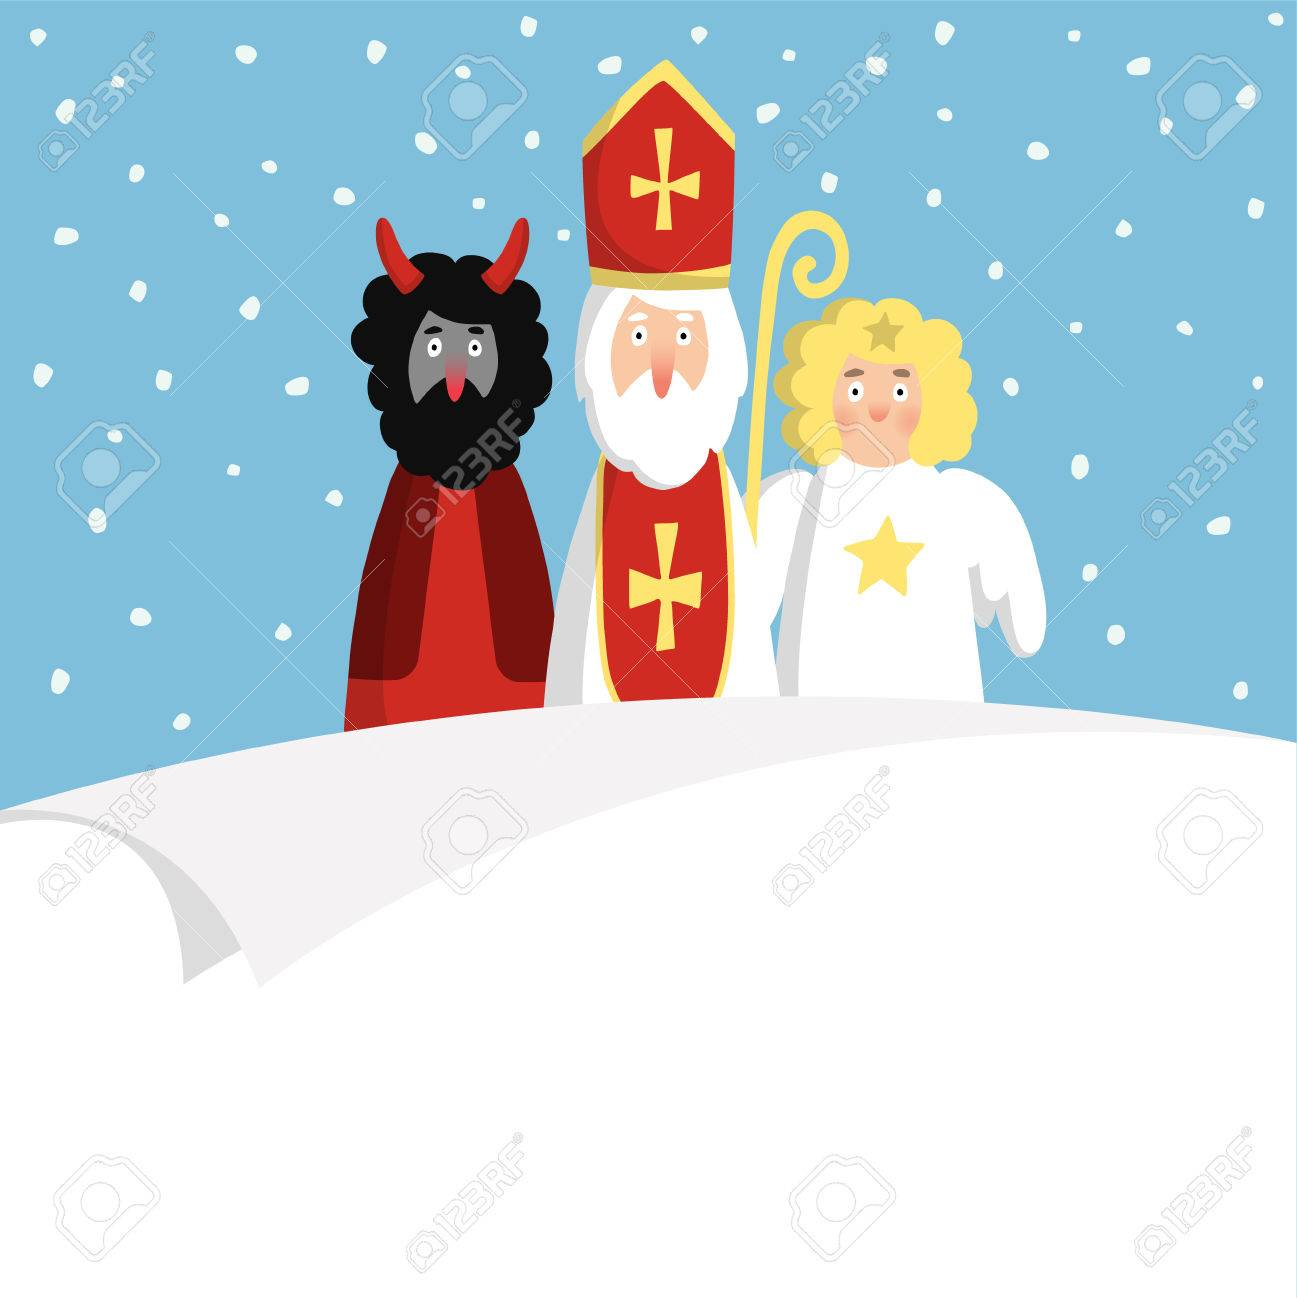 St Nicholas With Devilangel And Blank Paper Cute Christmas 1297x1300